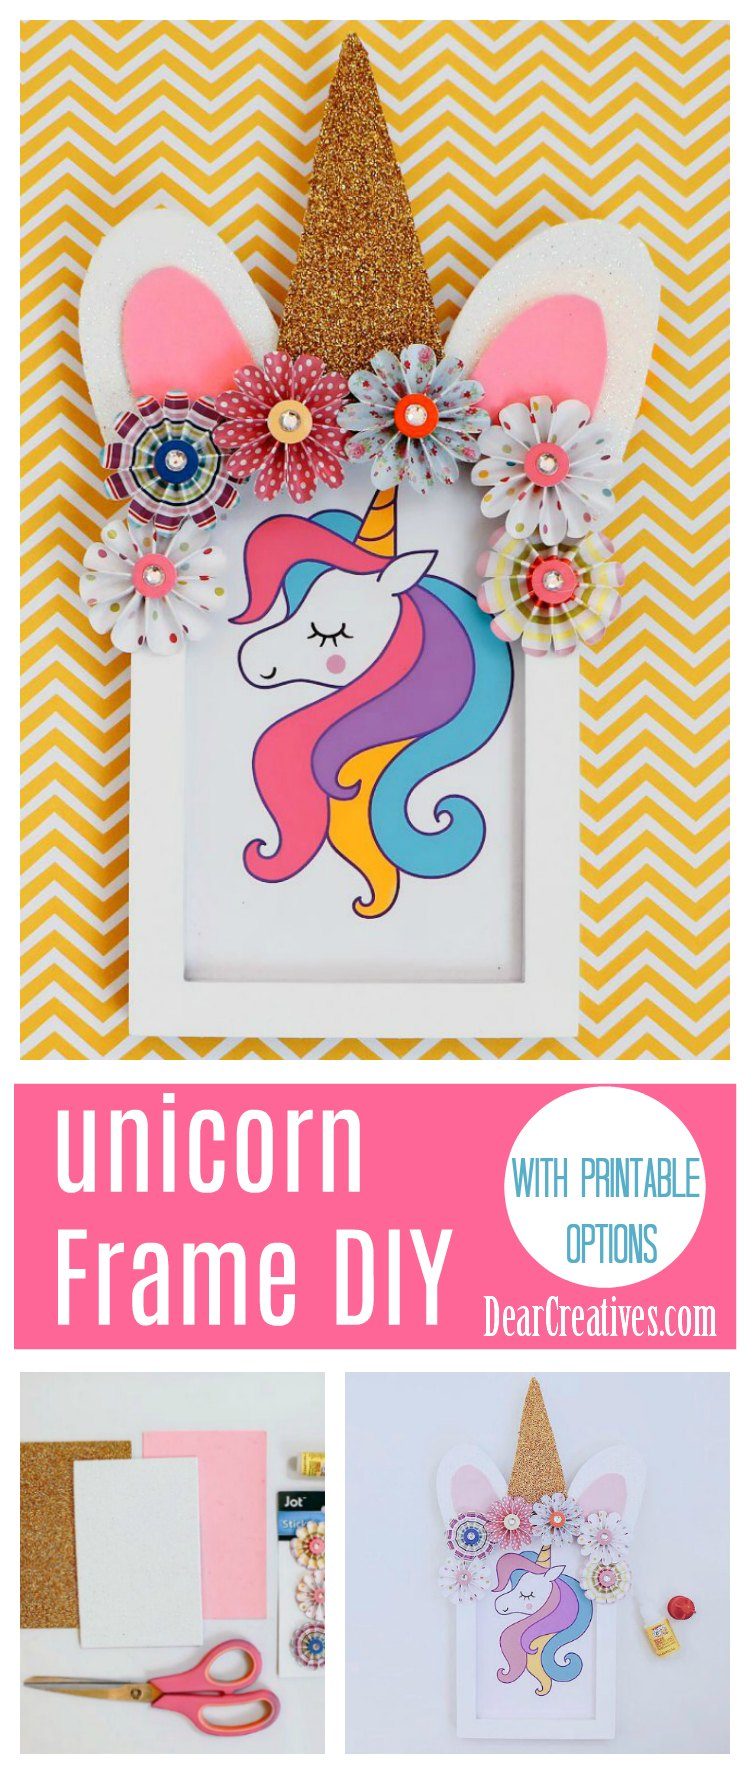 Unicorn Frame DIY is an easy unicorn crafts idea that is done with paper crafts, a frame, and a unicorn print. See how to make, and decorate. DearCreatives.com #unicornframecraft #unicorncrafts #easyunicorncrafts